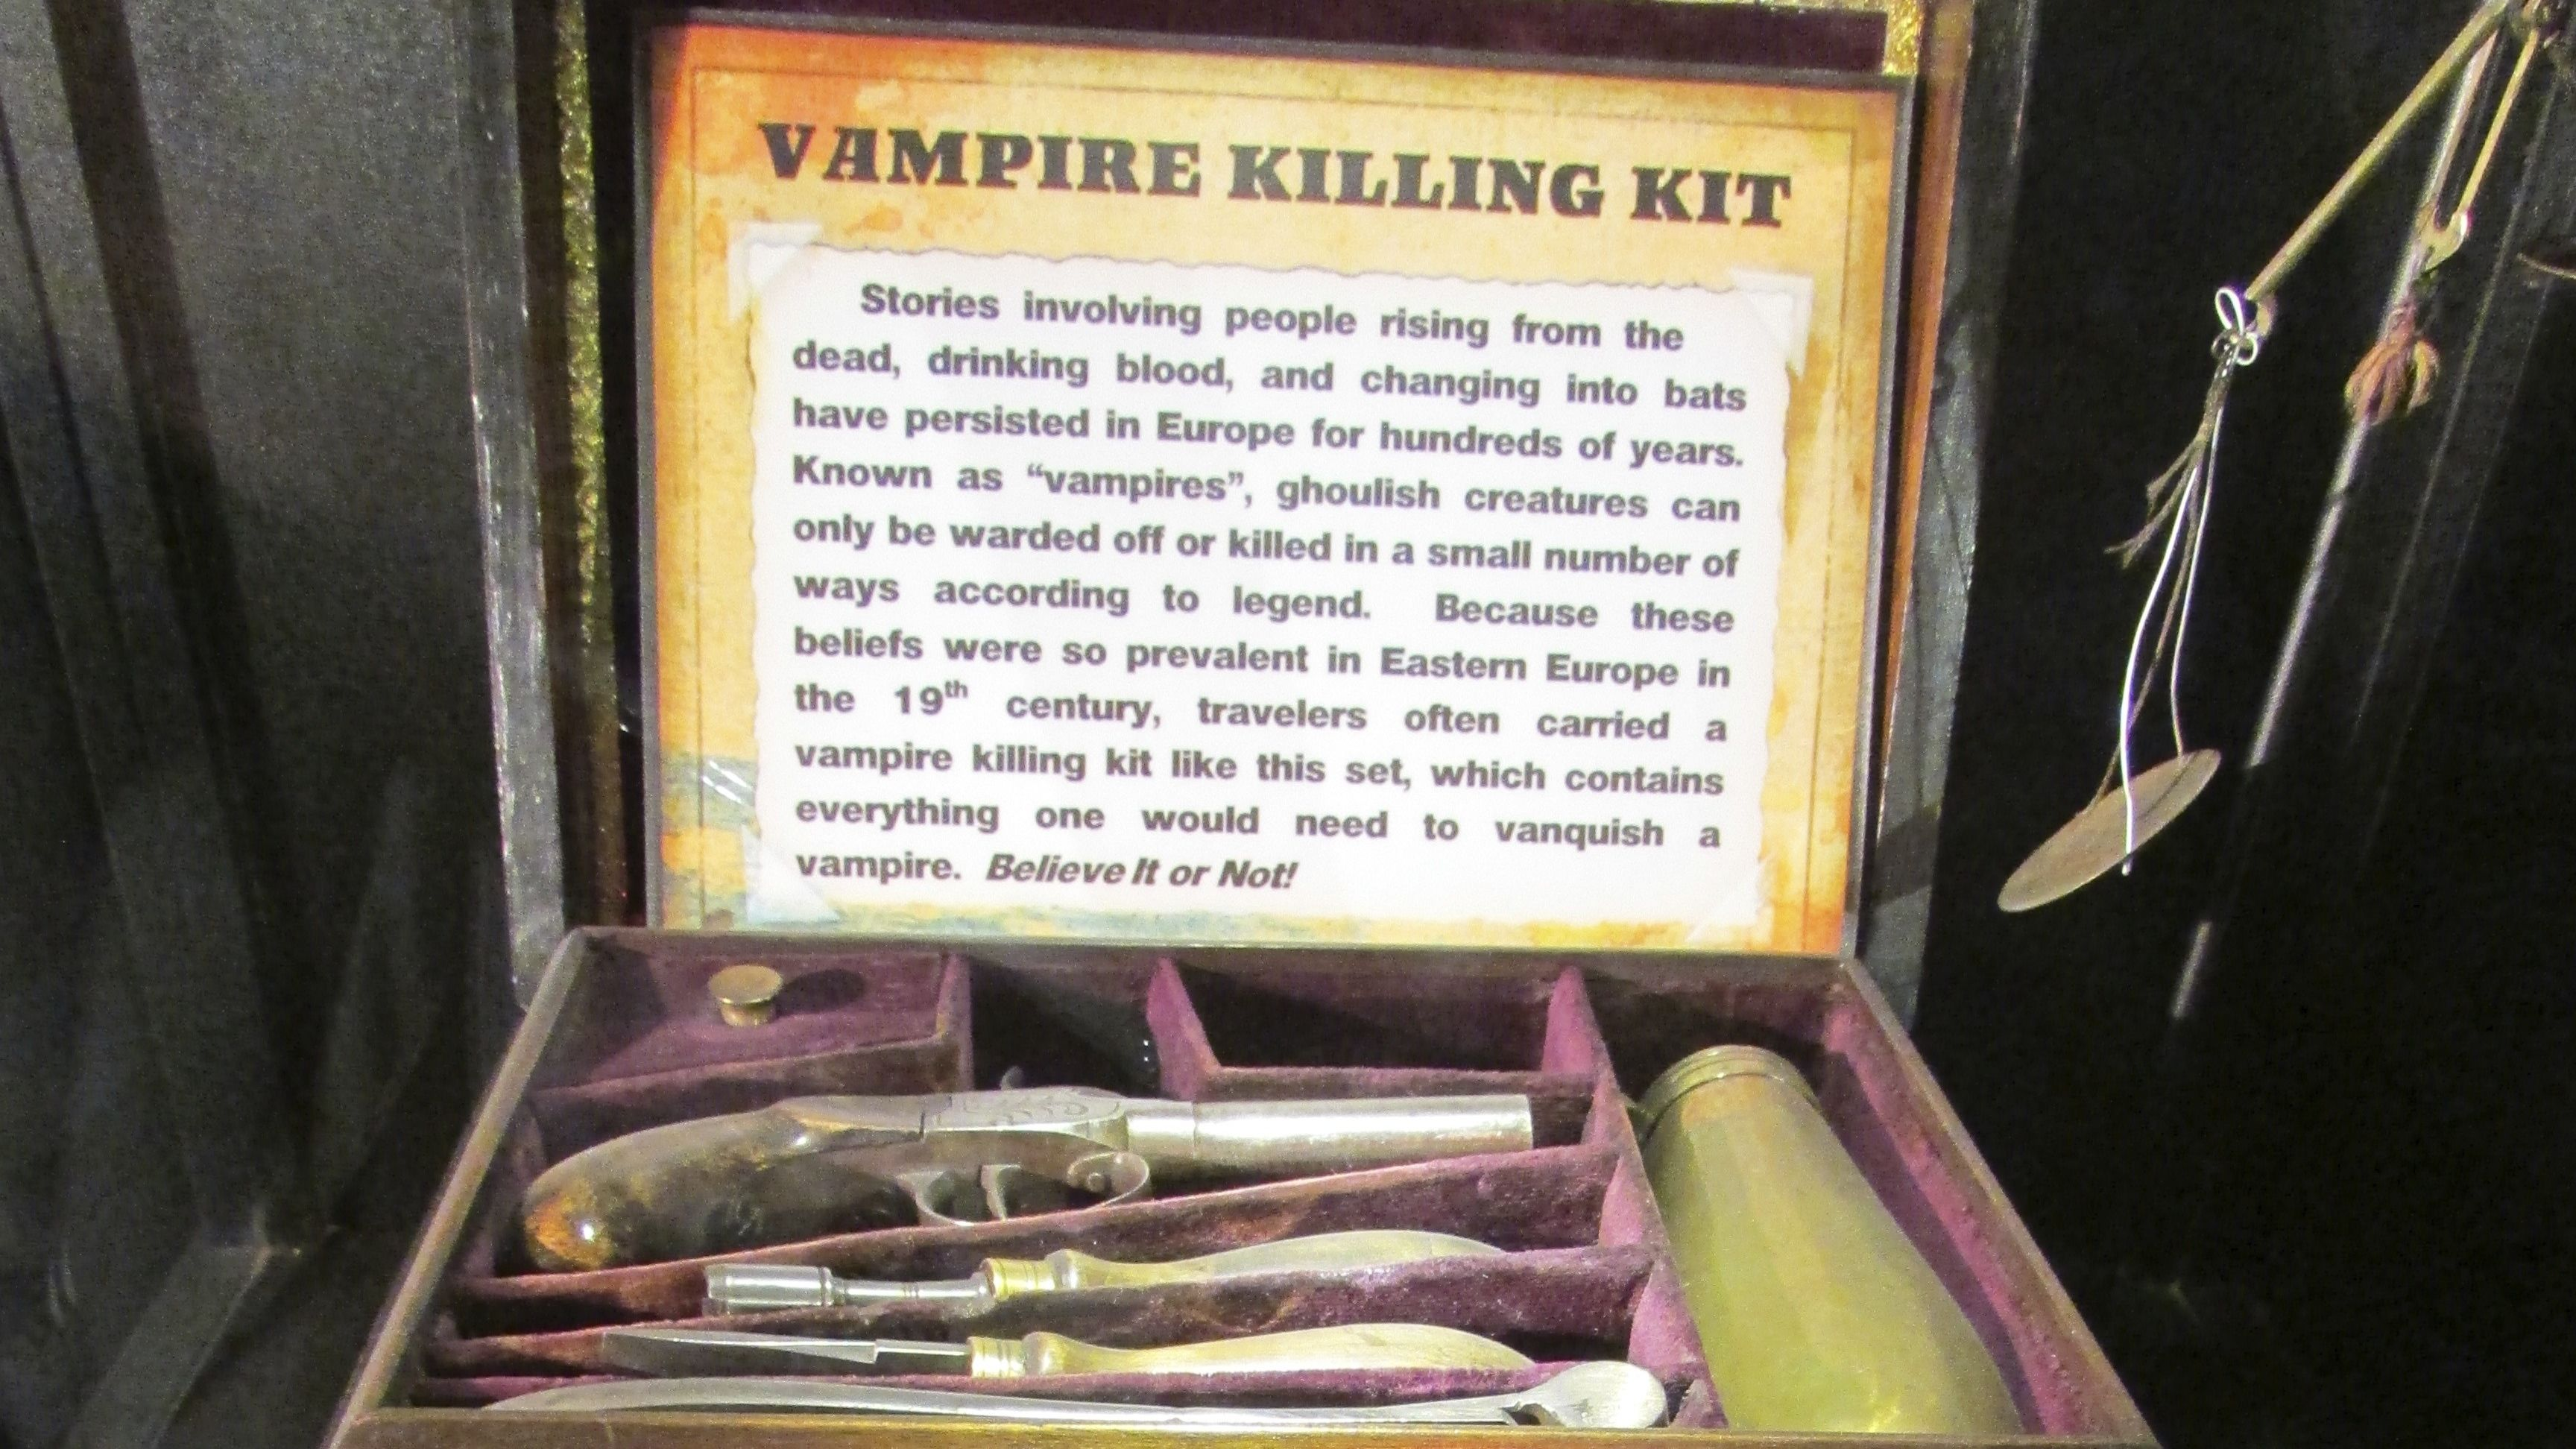 A vampire killing kit at Ripley's Believe It or Not! in San Francisco